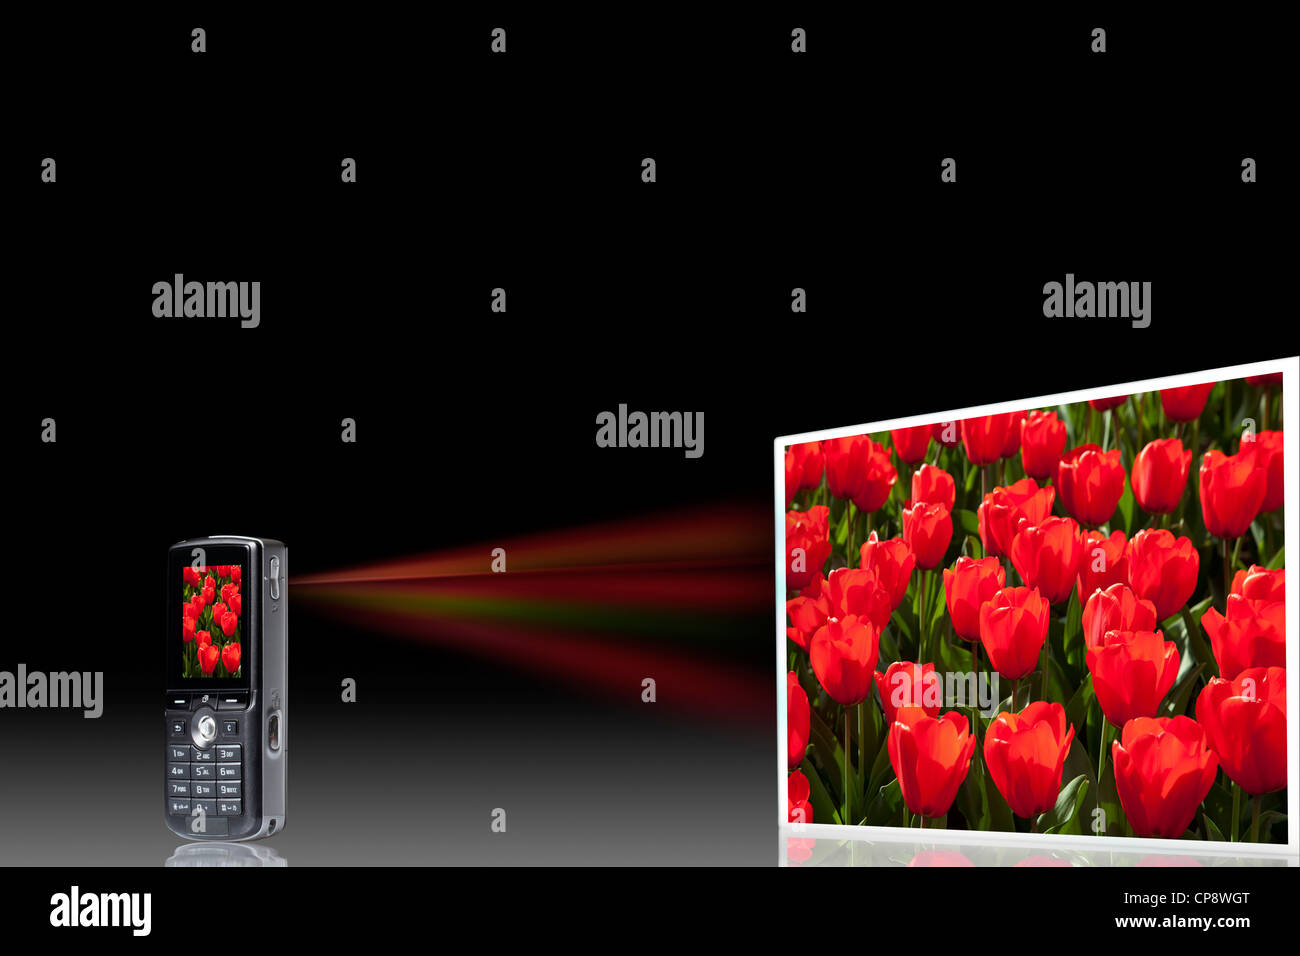 Tulip bed on projection screen through mobile phone, close up - Stock Image